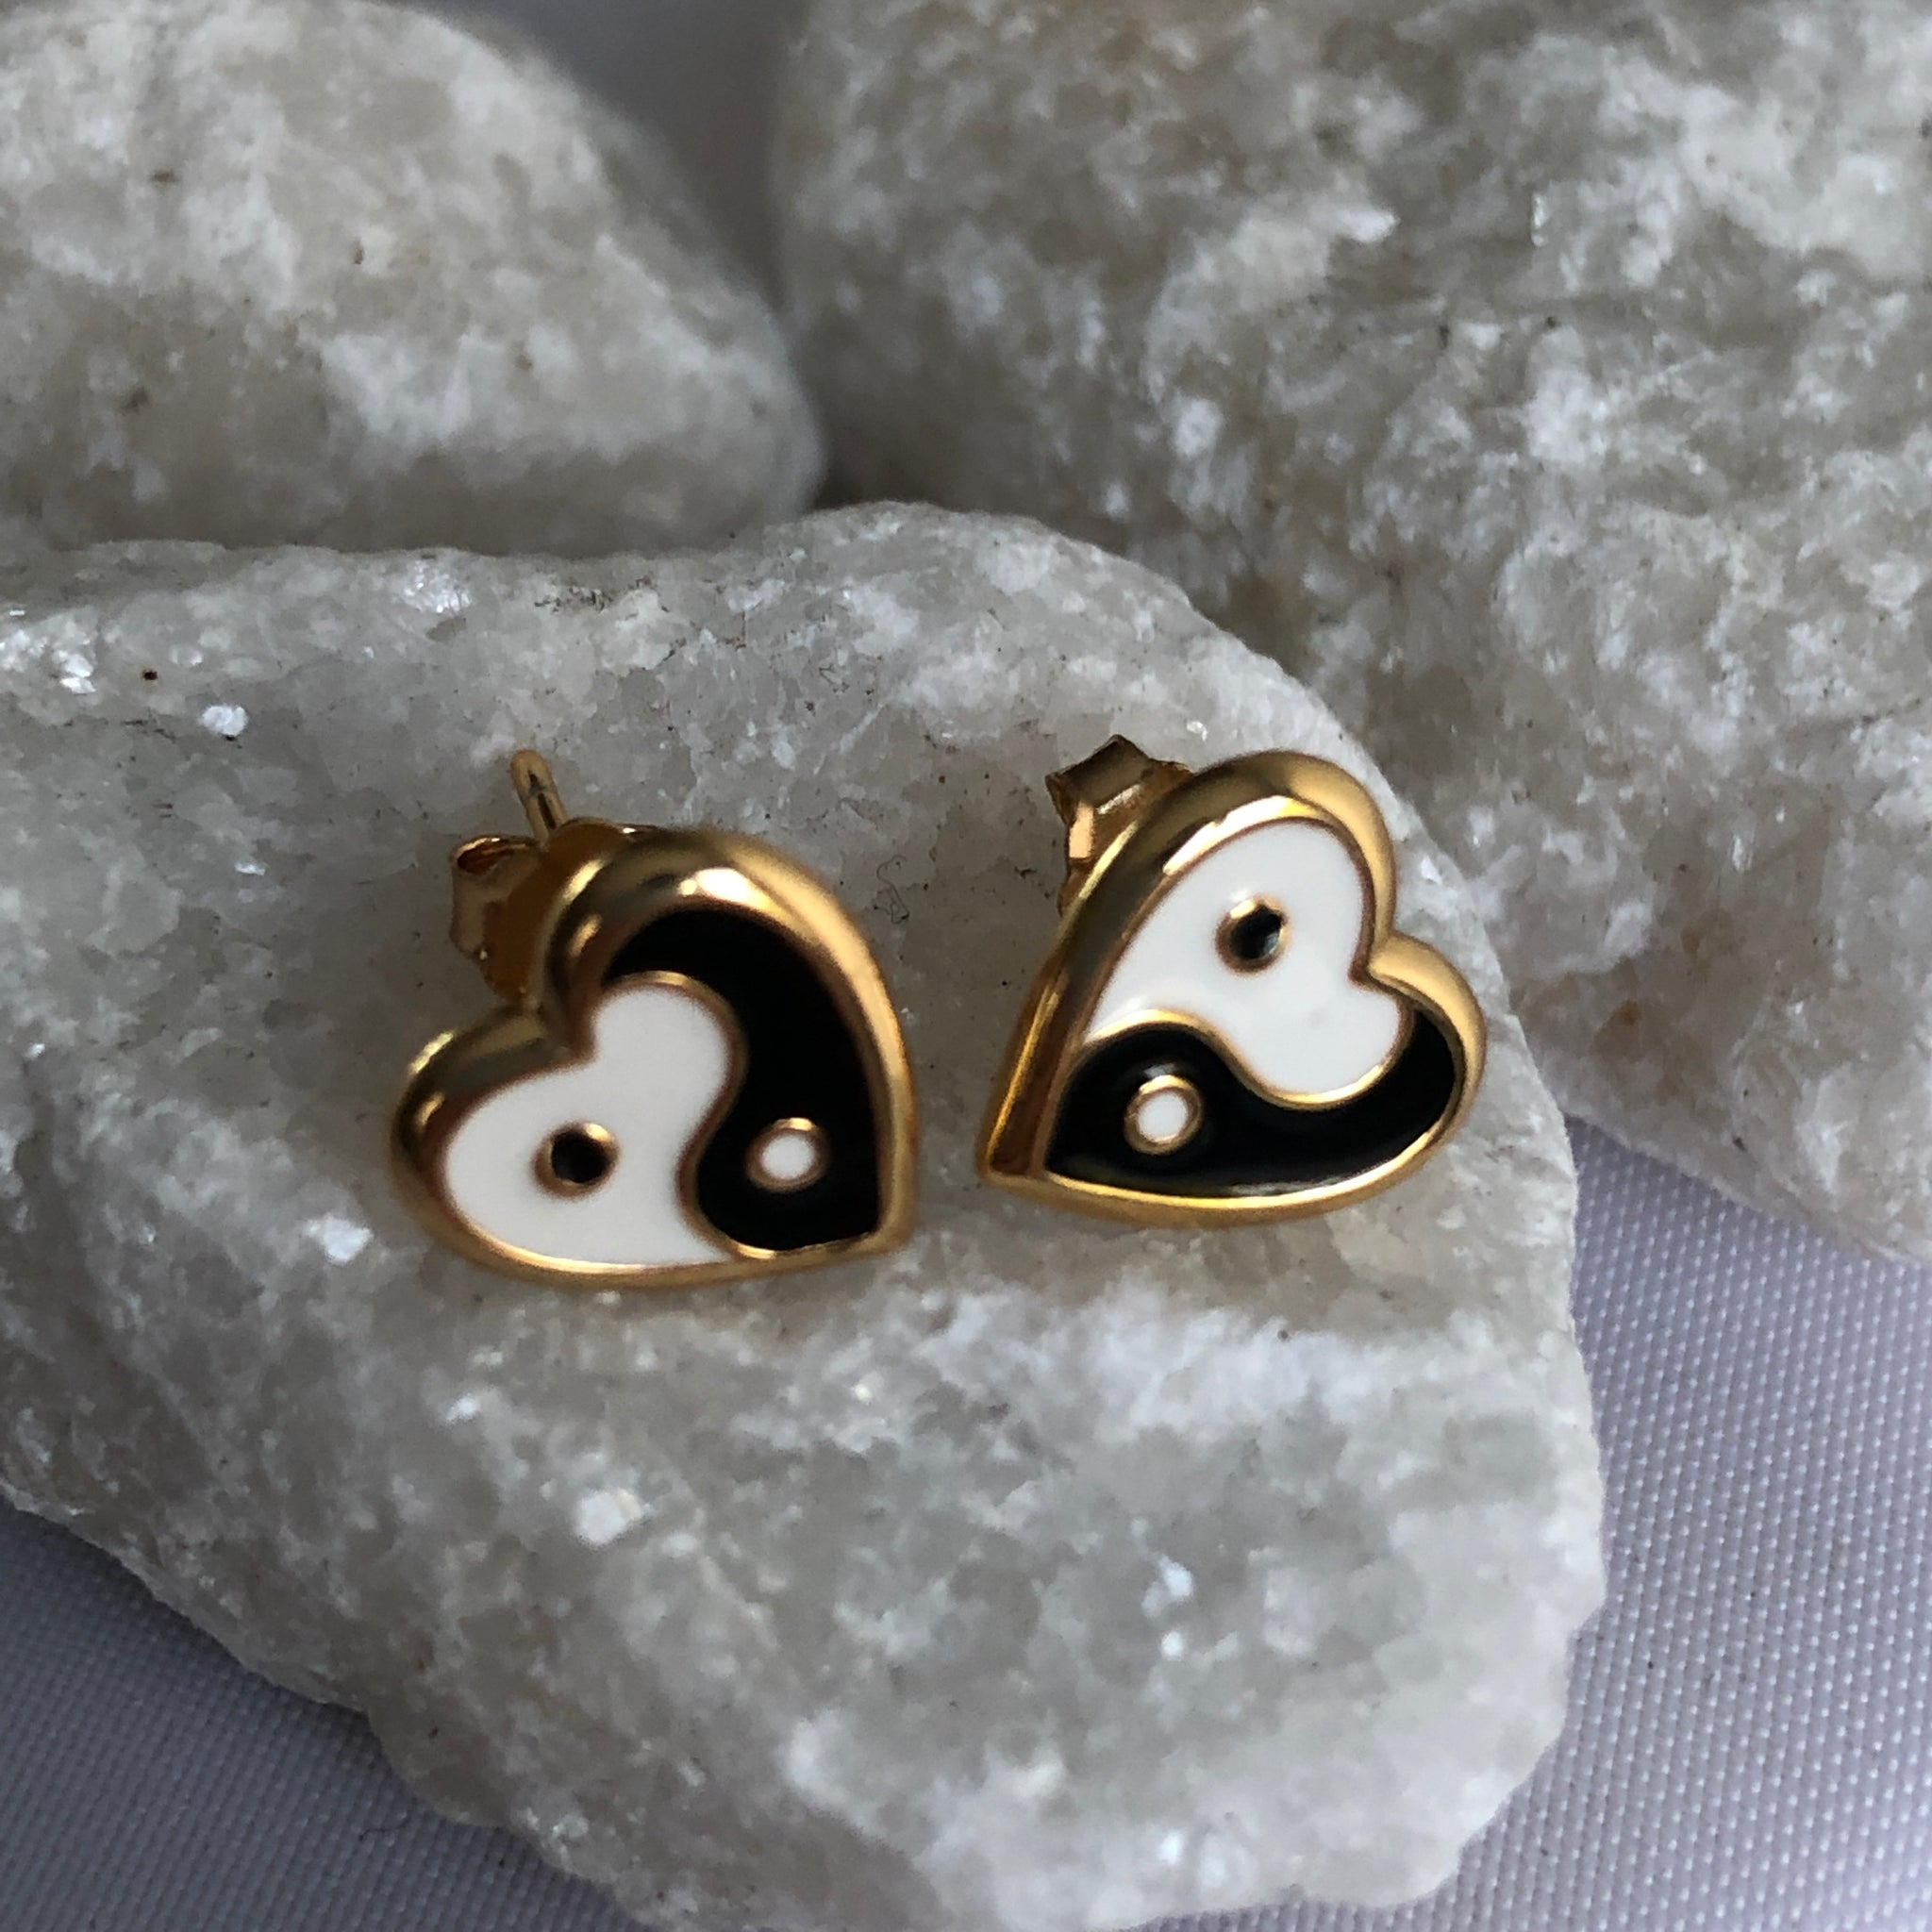 Yin and Yang stud earrings